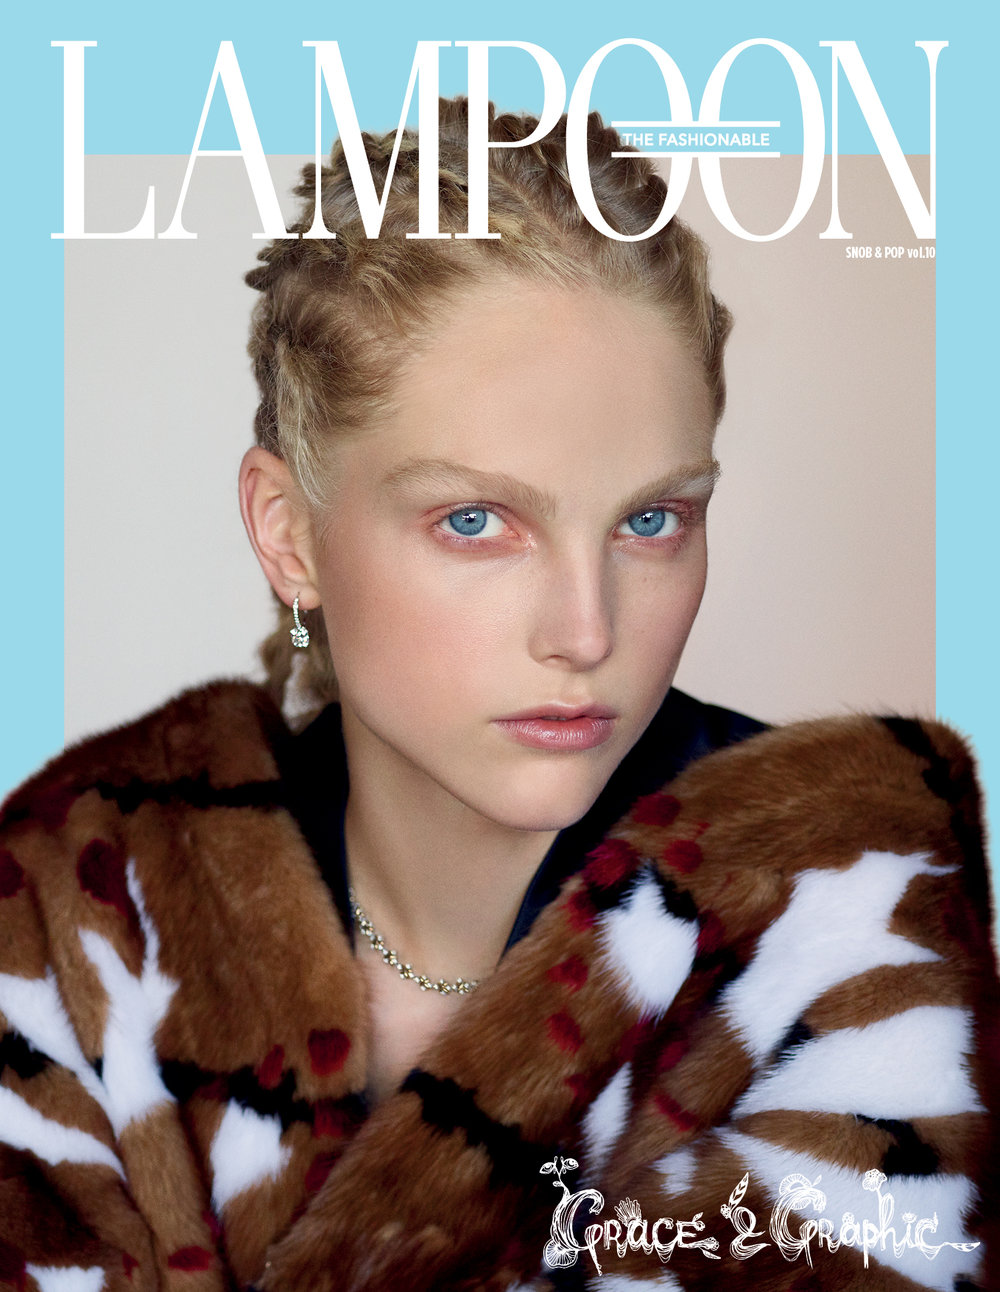 LAMPOON Magazine Sept Issue Covershoot